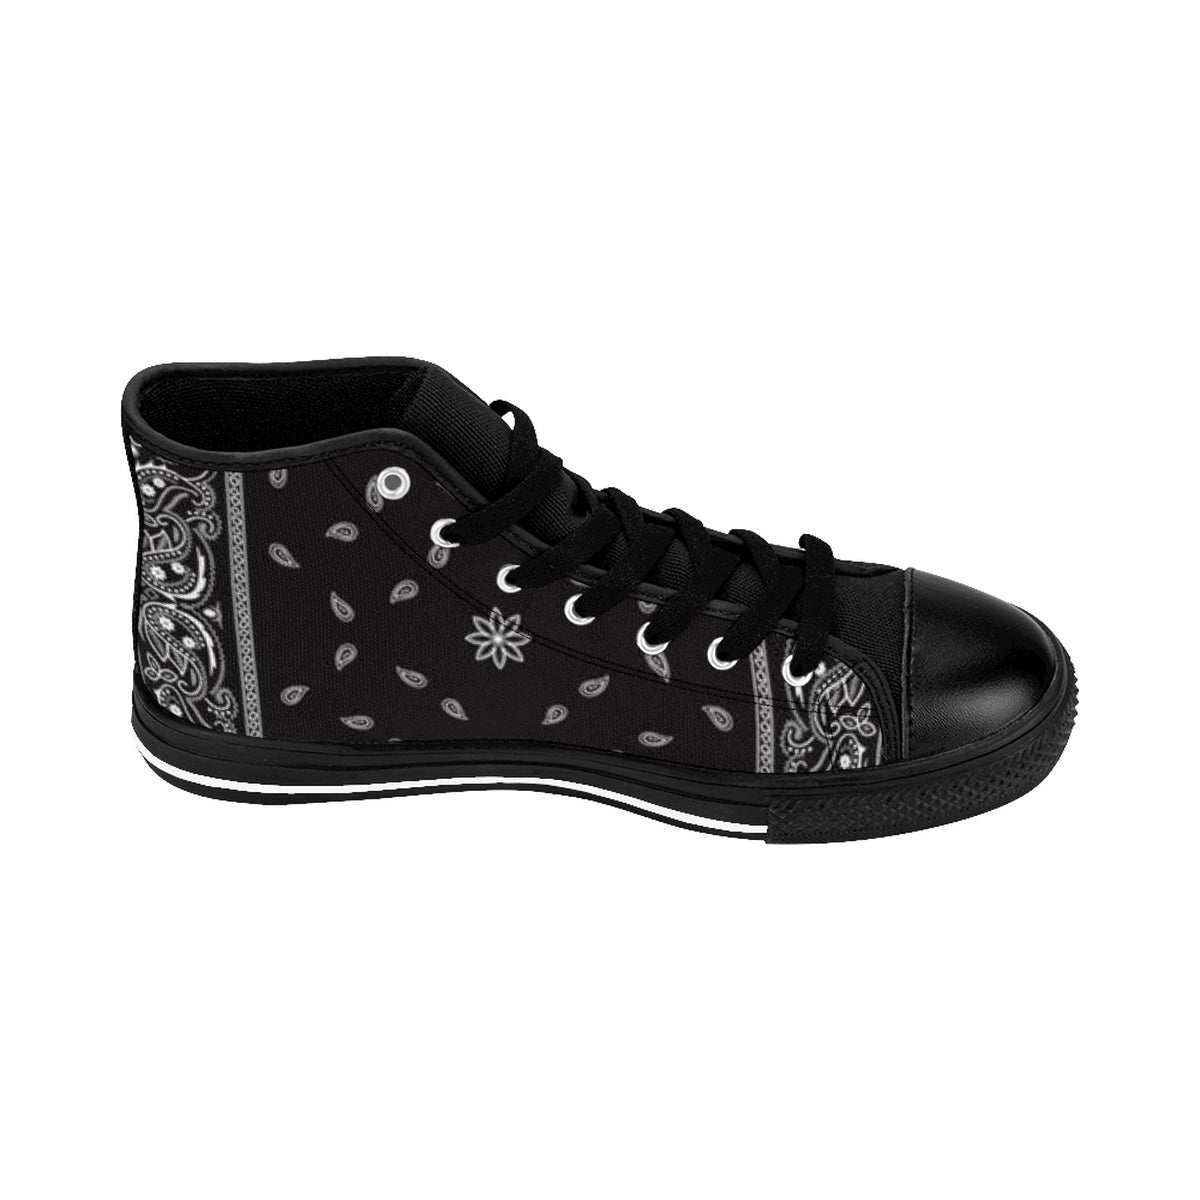 Ghetto Gov't Officialz Black Bandana Logo Men's Designer Shoes High-Top Sneakers